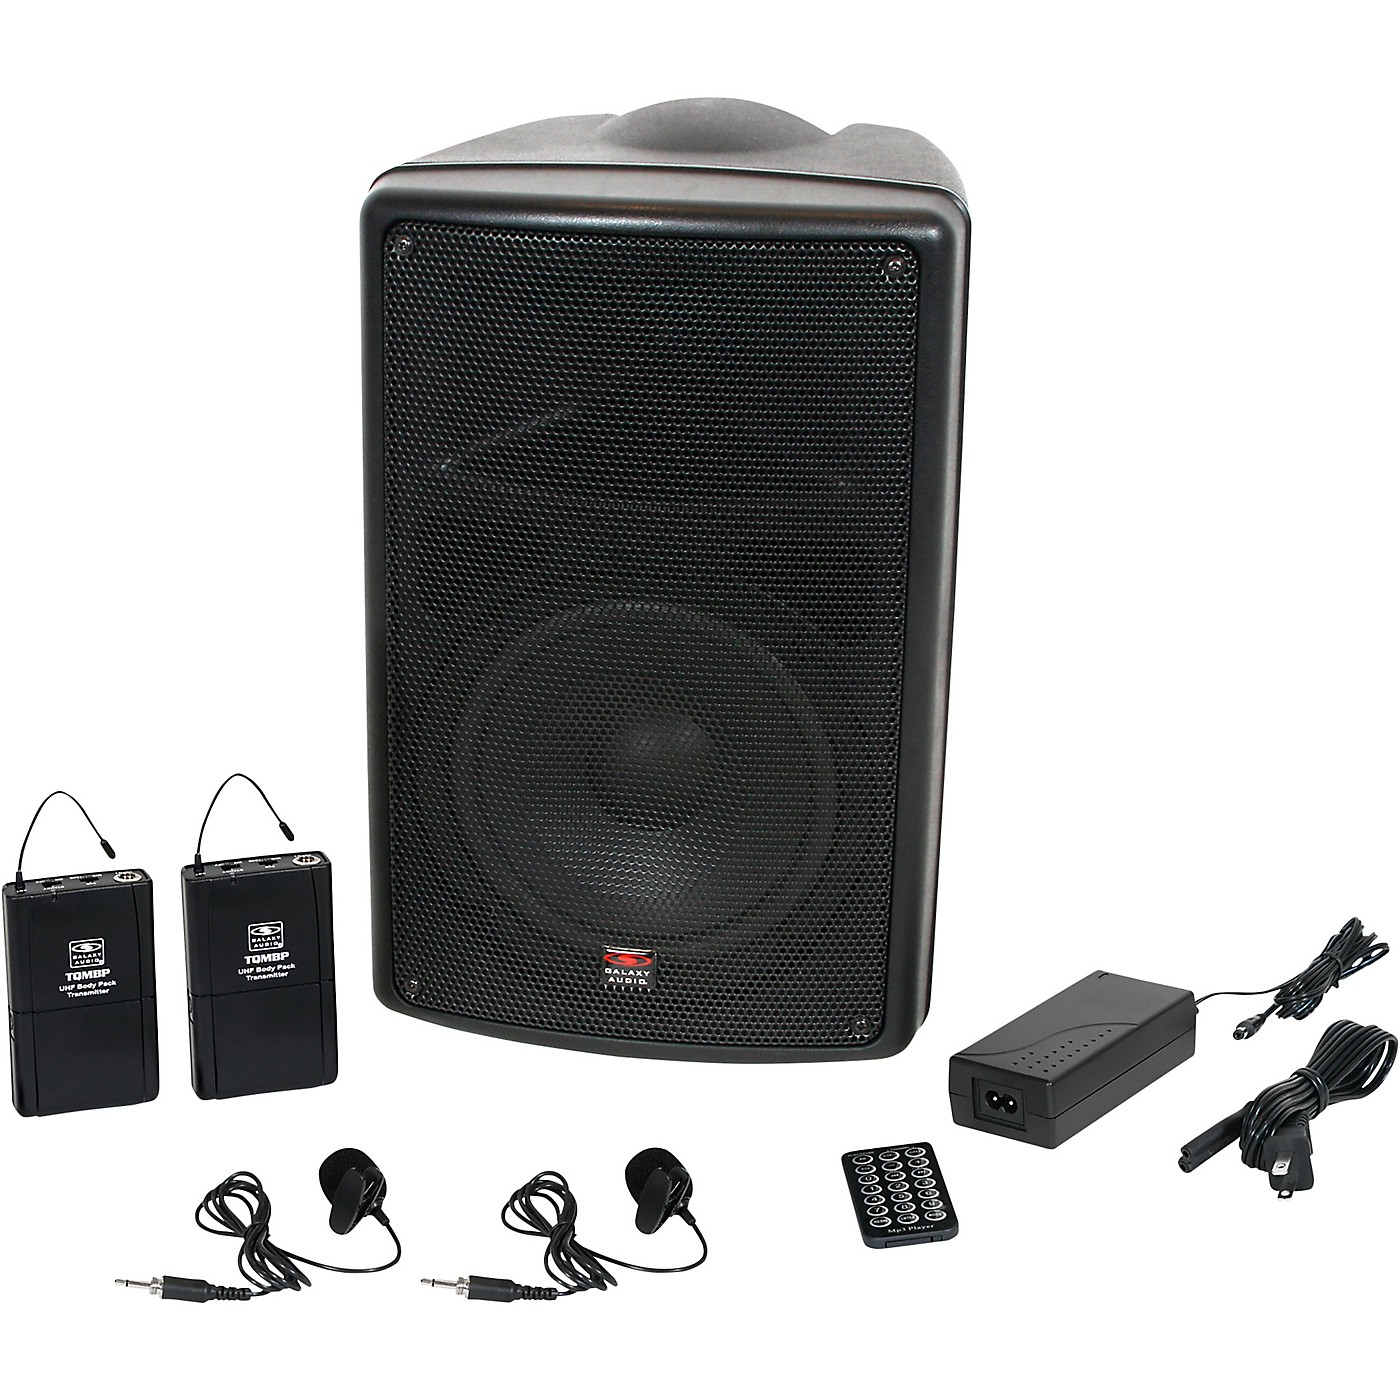 Galaxy Audio TQ8-24VVN Traveler Quest 8 TQ8 Battery Powered Portable PA Speaker System With Two Receivers and Two Lav Microphones thumbnail